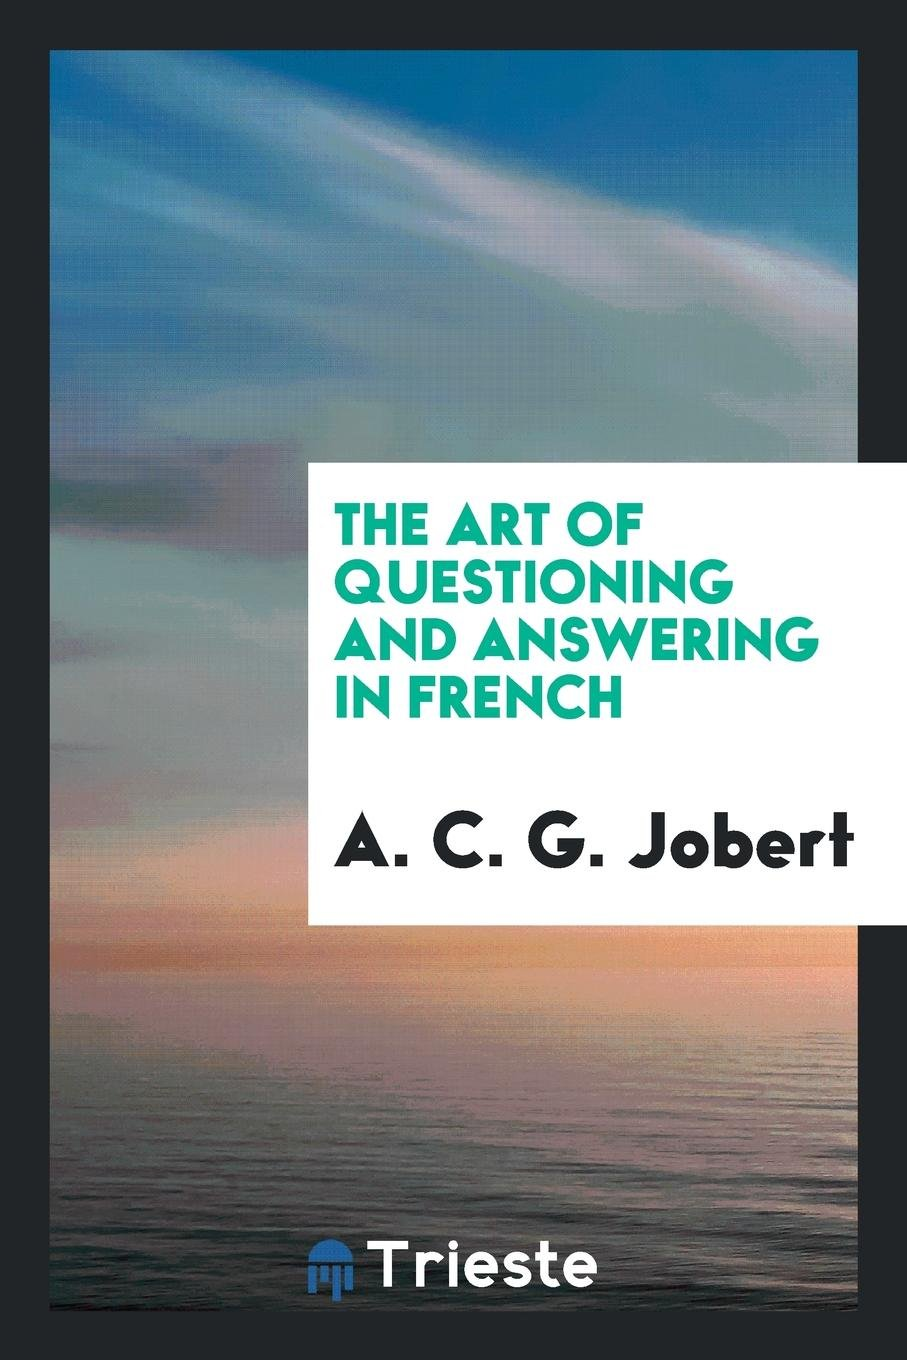 The Art of Questioning and Answering in French pdf